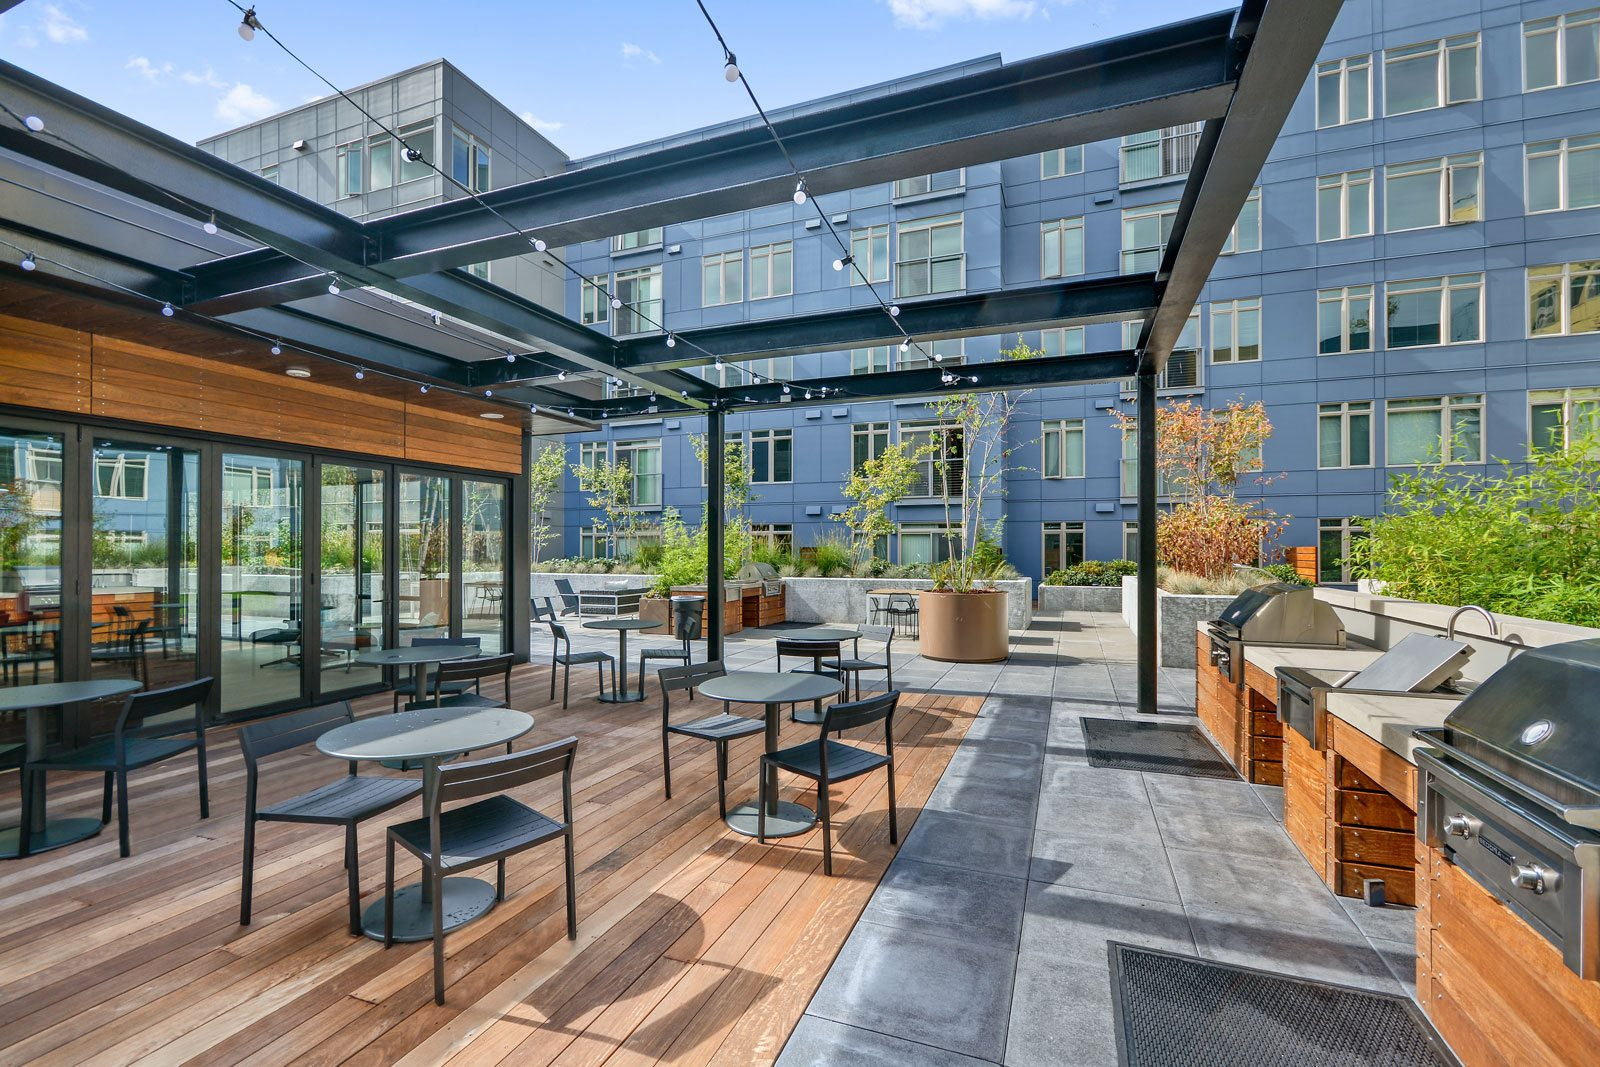 Picnic and BBQ Area at The Whittaker, 4755 Fauntleroy Way, Seattle